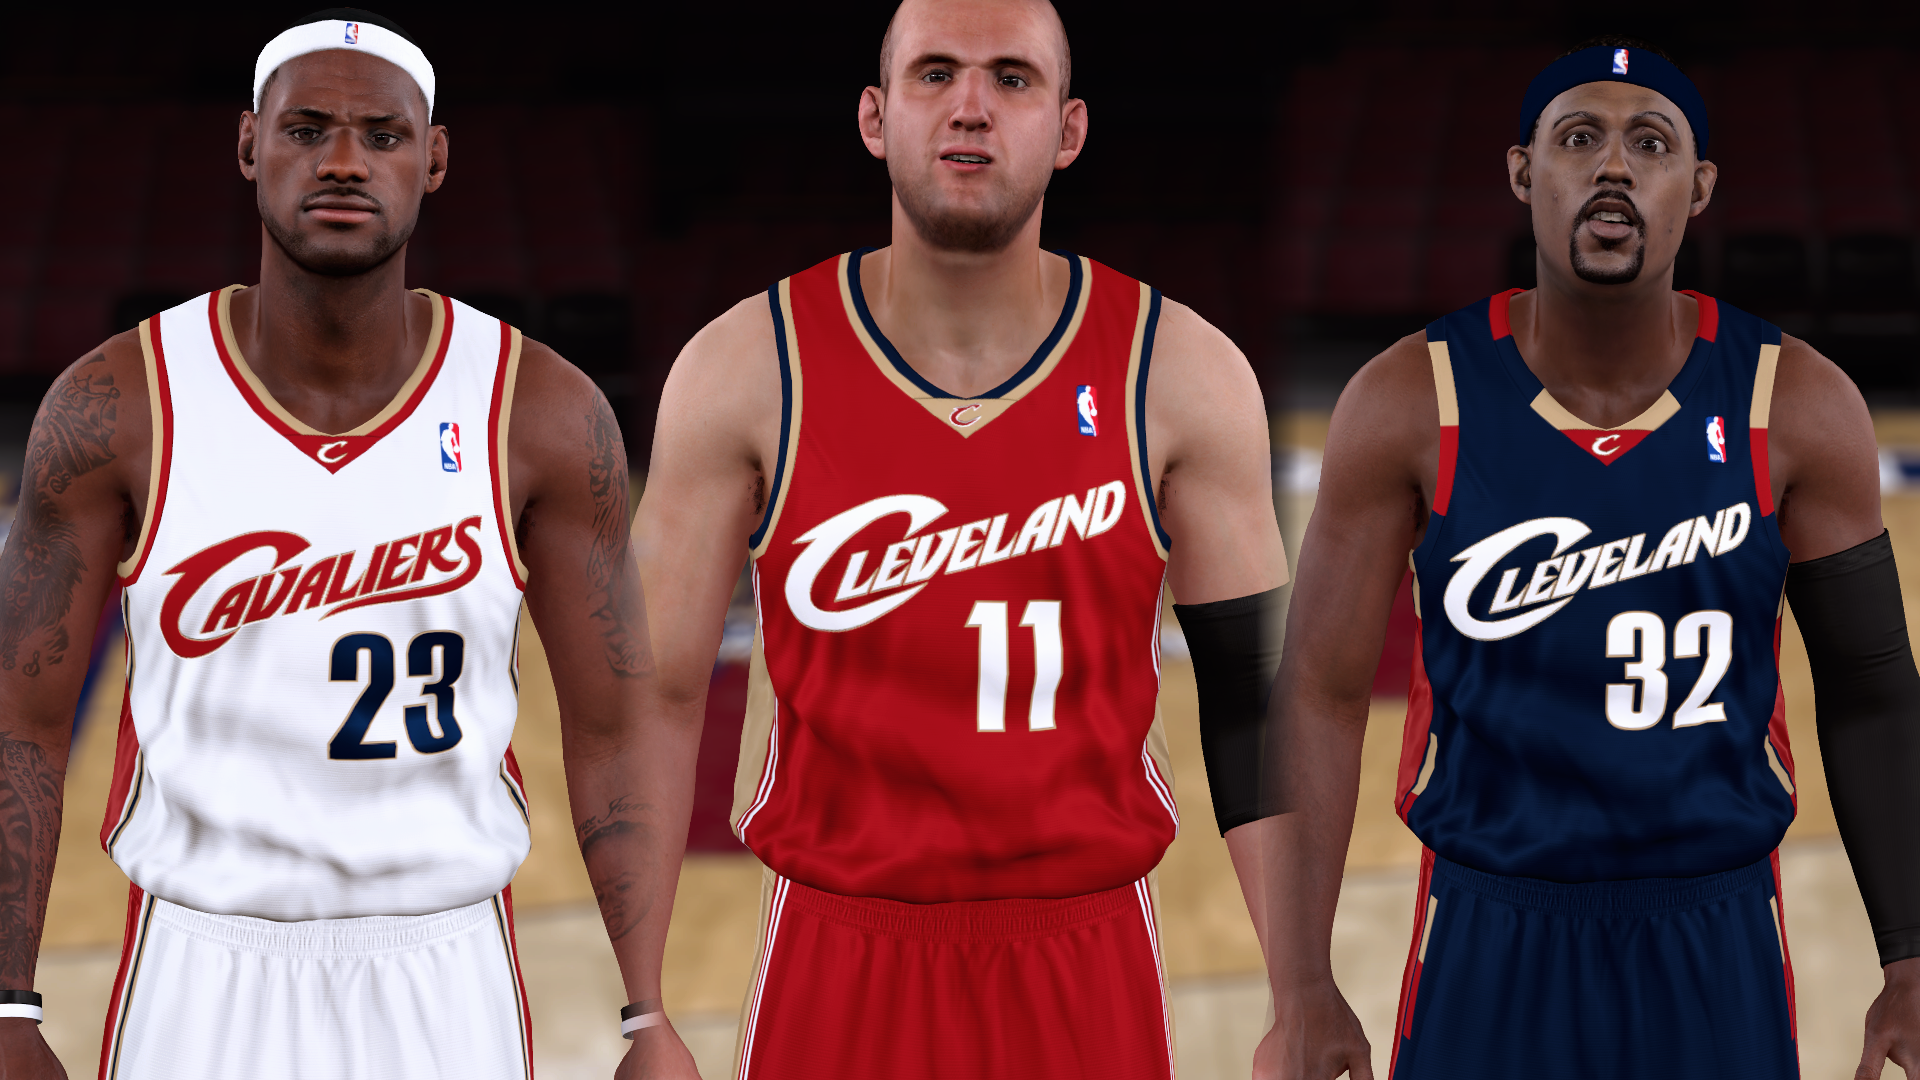 2006-2007 Cavaliers Jerseys - PeacemanNOT